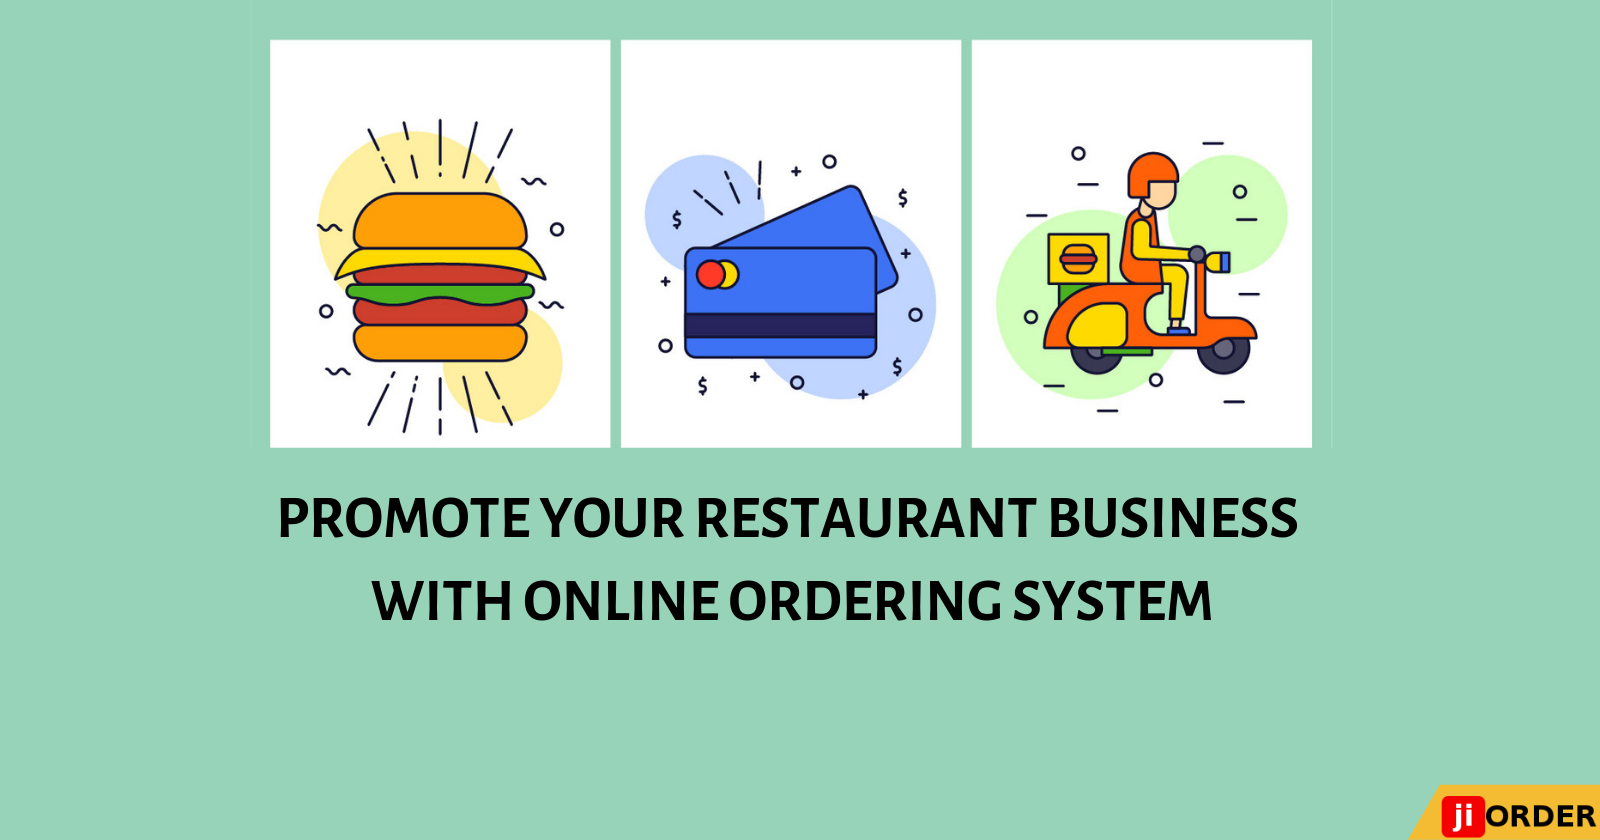 Improve Online Ordering Of Food With Digital And Video Images